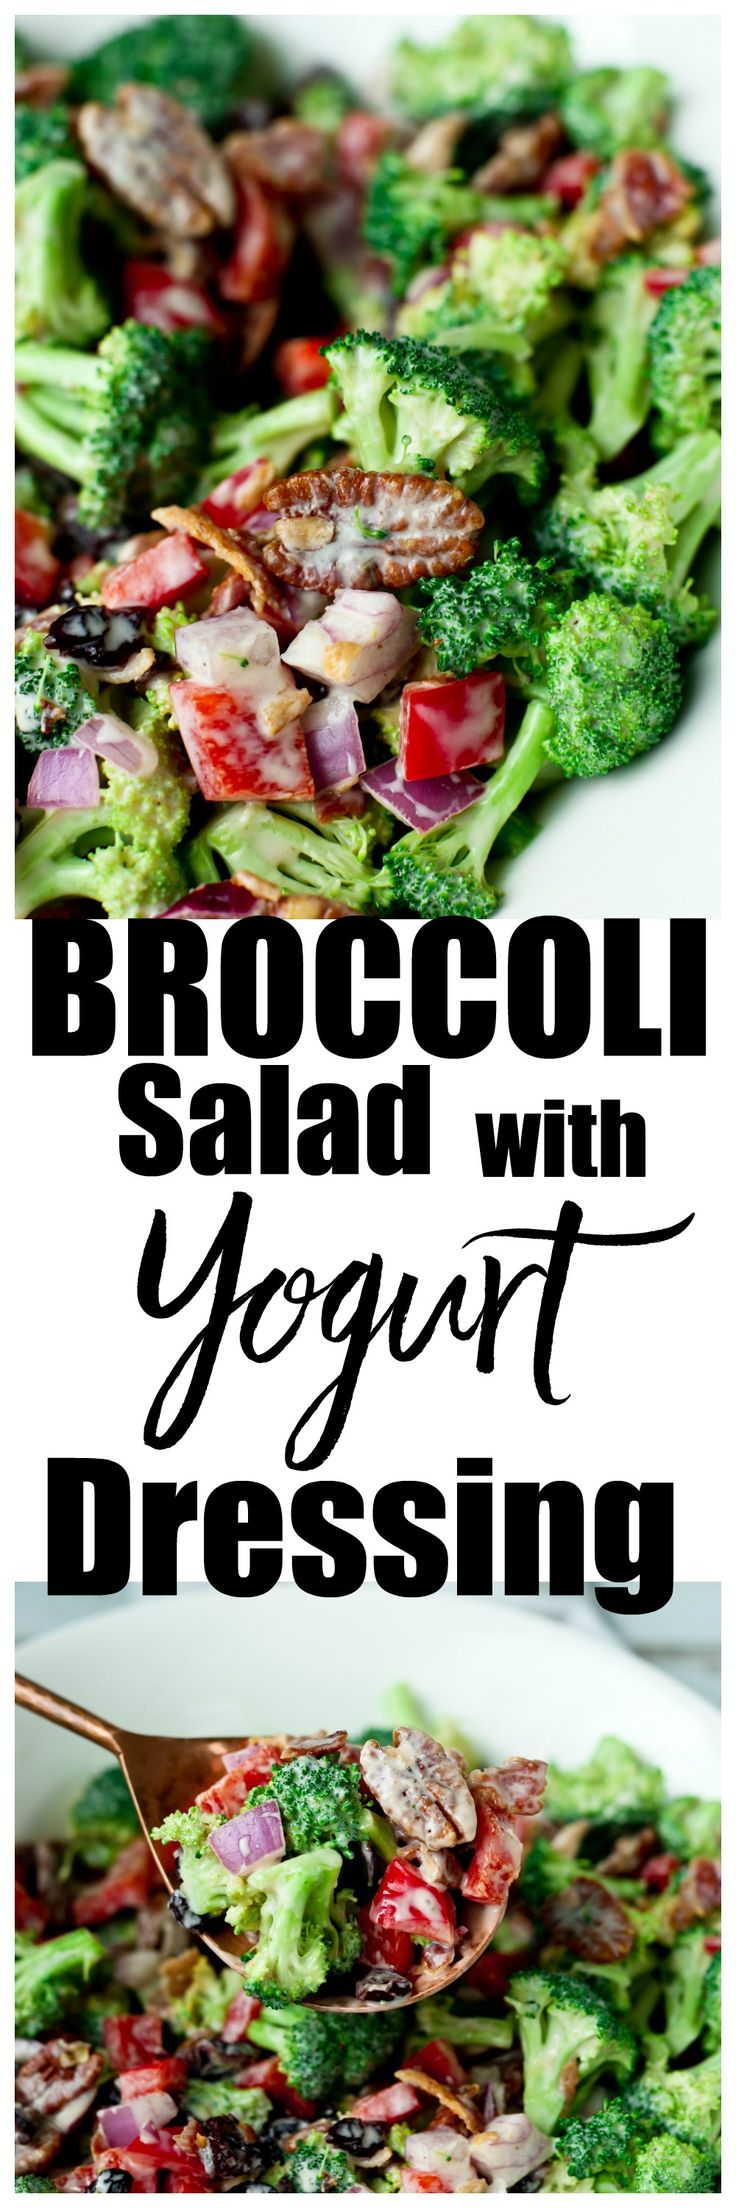 Broccoli Salad with yogurt dressing recipe. This is a healthy version of classic broccoli salad using uncured bacon and Greek yogurt. It would also make a great Christmas side dish with these colors! via @Maryea Flaherty